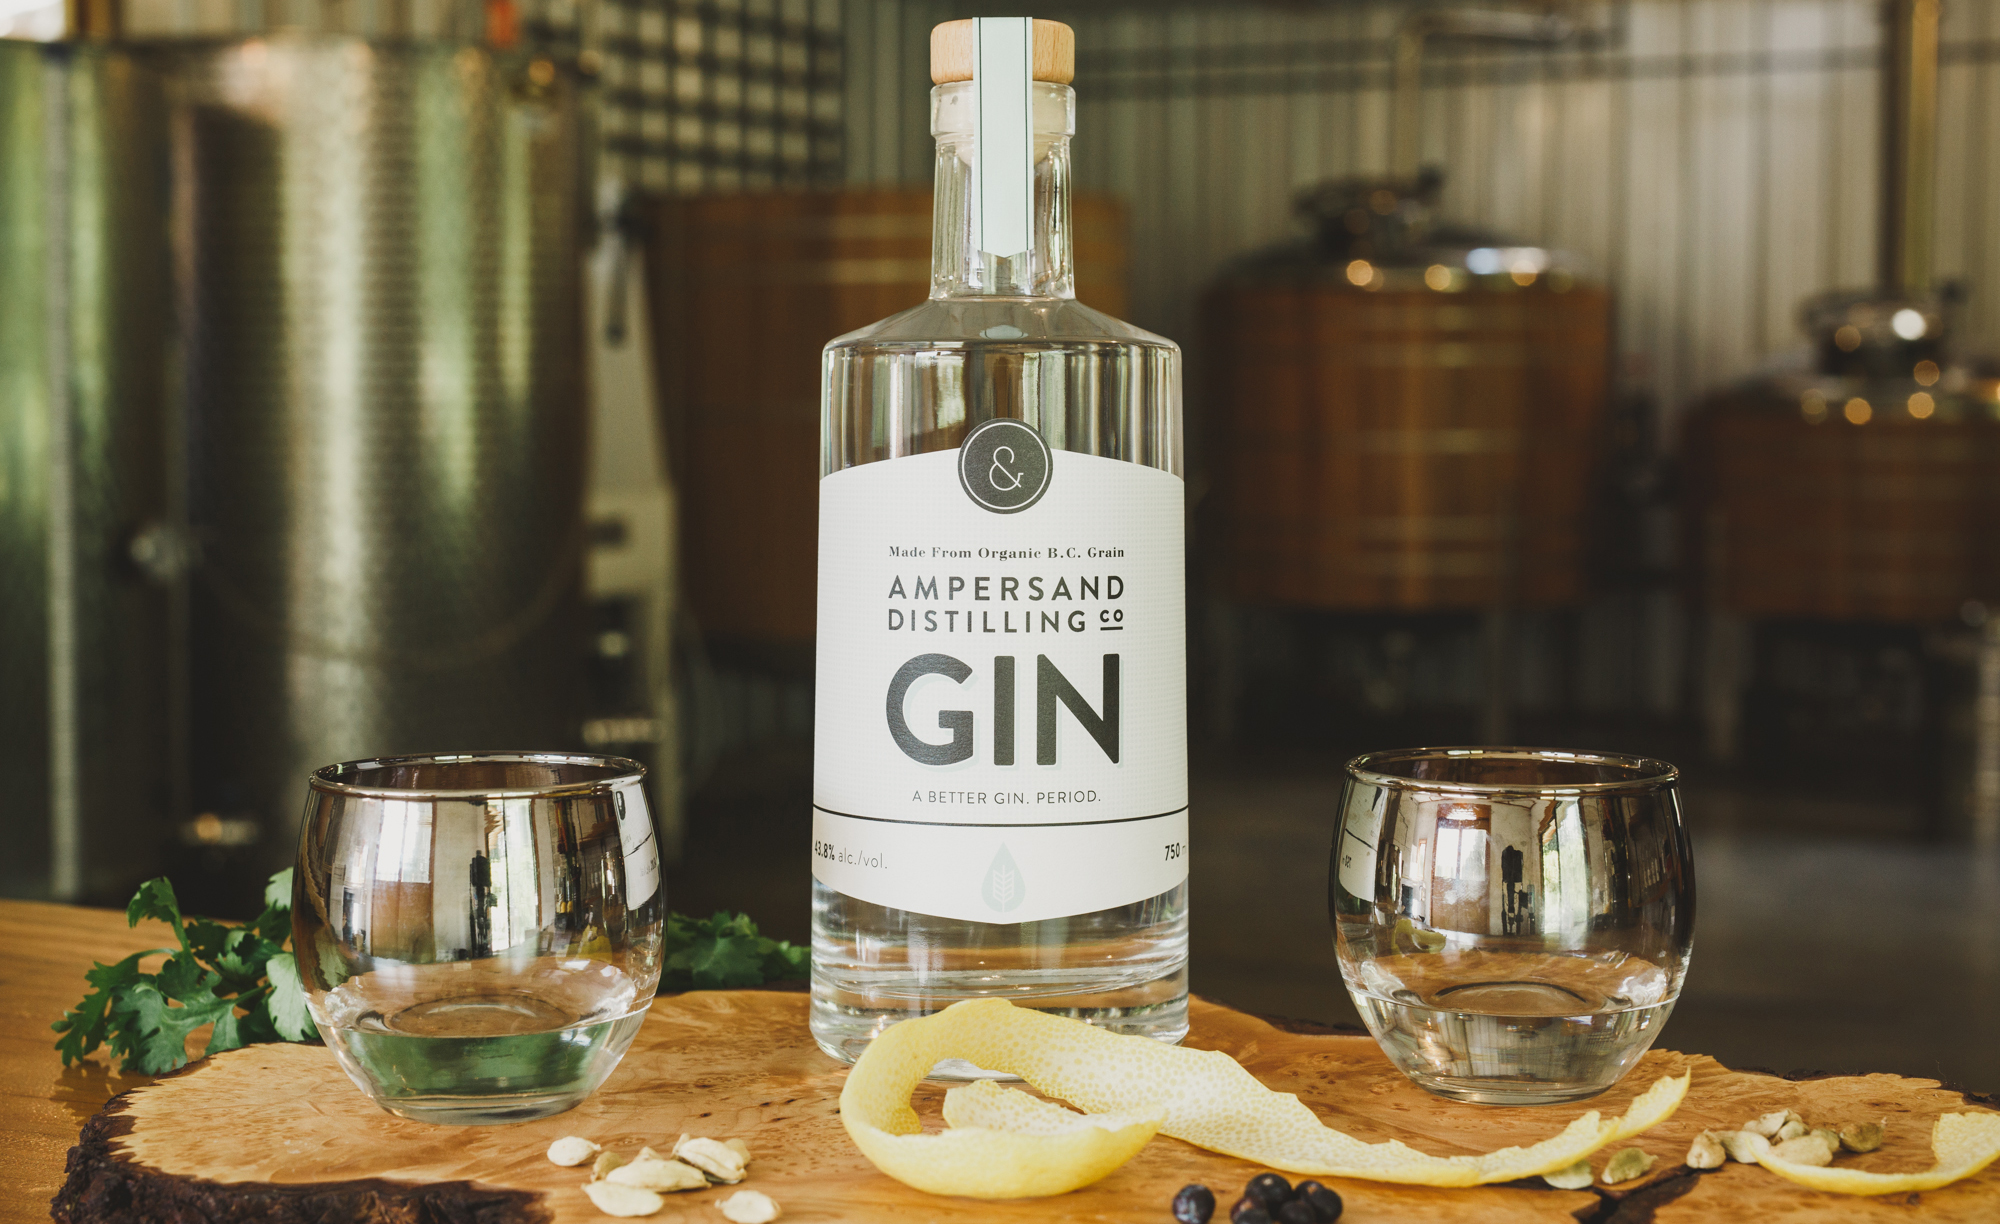 Ampersand Distilling Co. is on The Hunt for an Assistant Distillery Operator